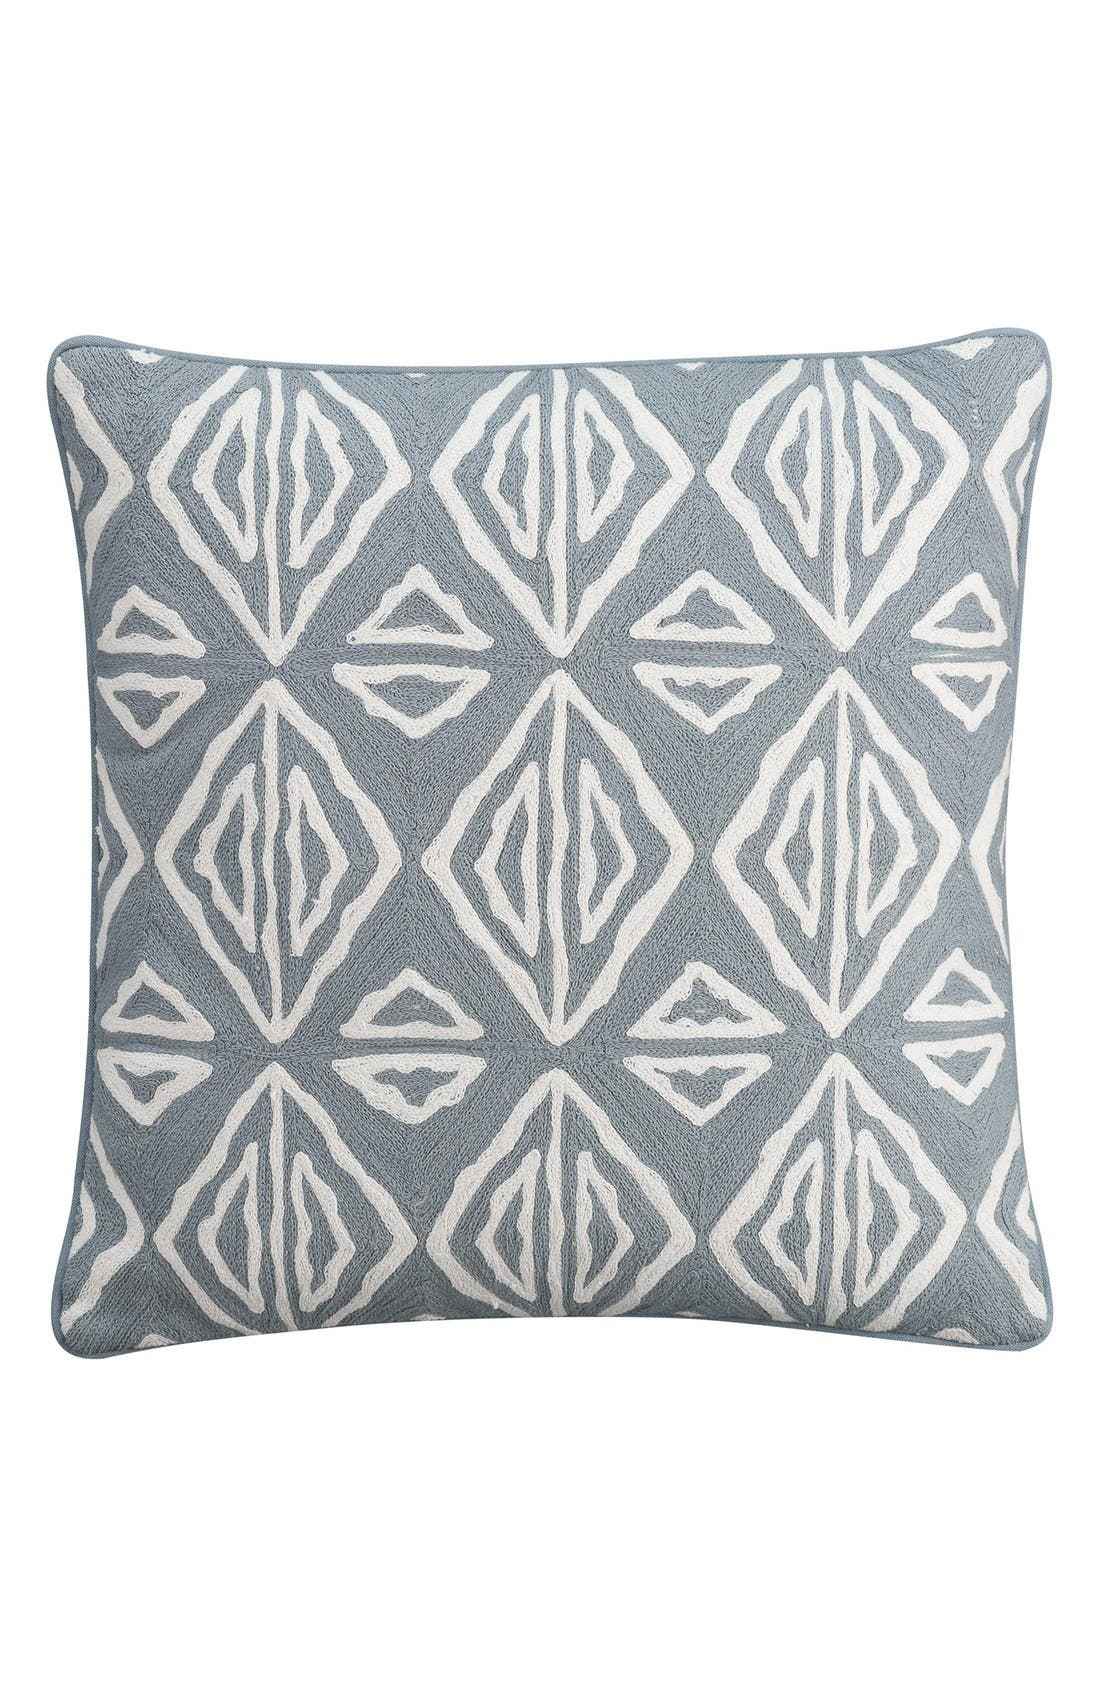 'Moroccan Geo' Crewel Embroidered Pillow,                             Main thumbnail 1, color,                             020